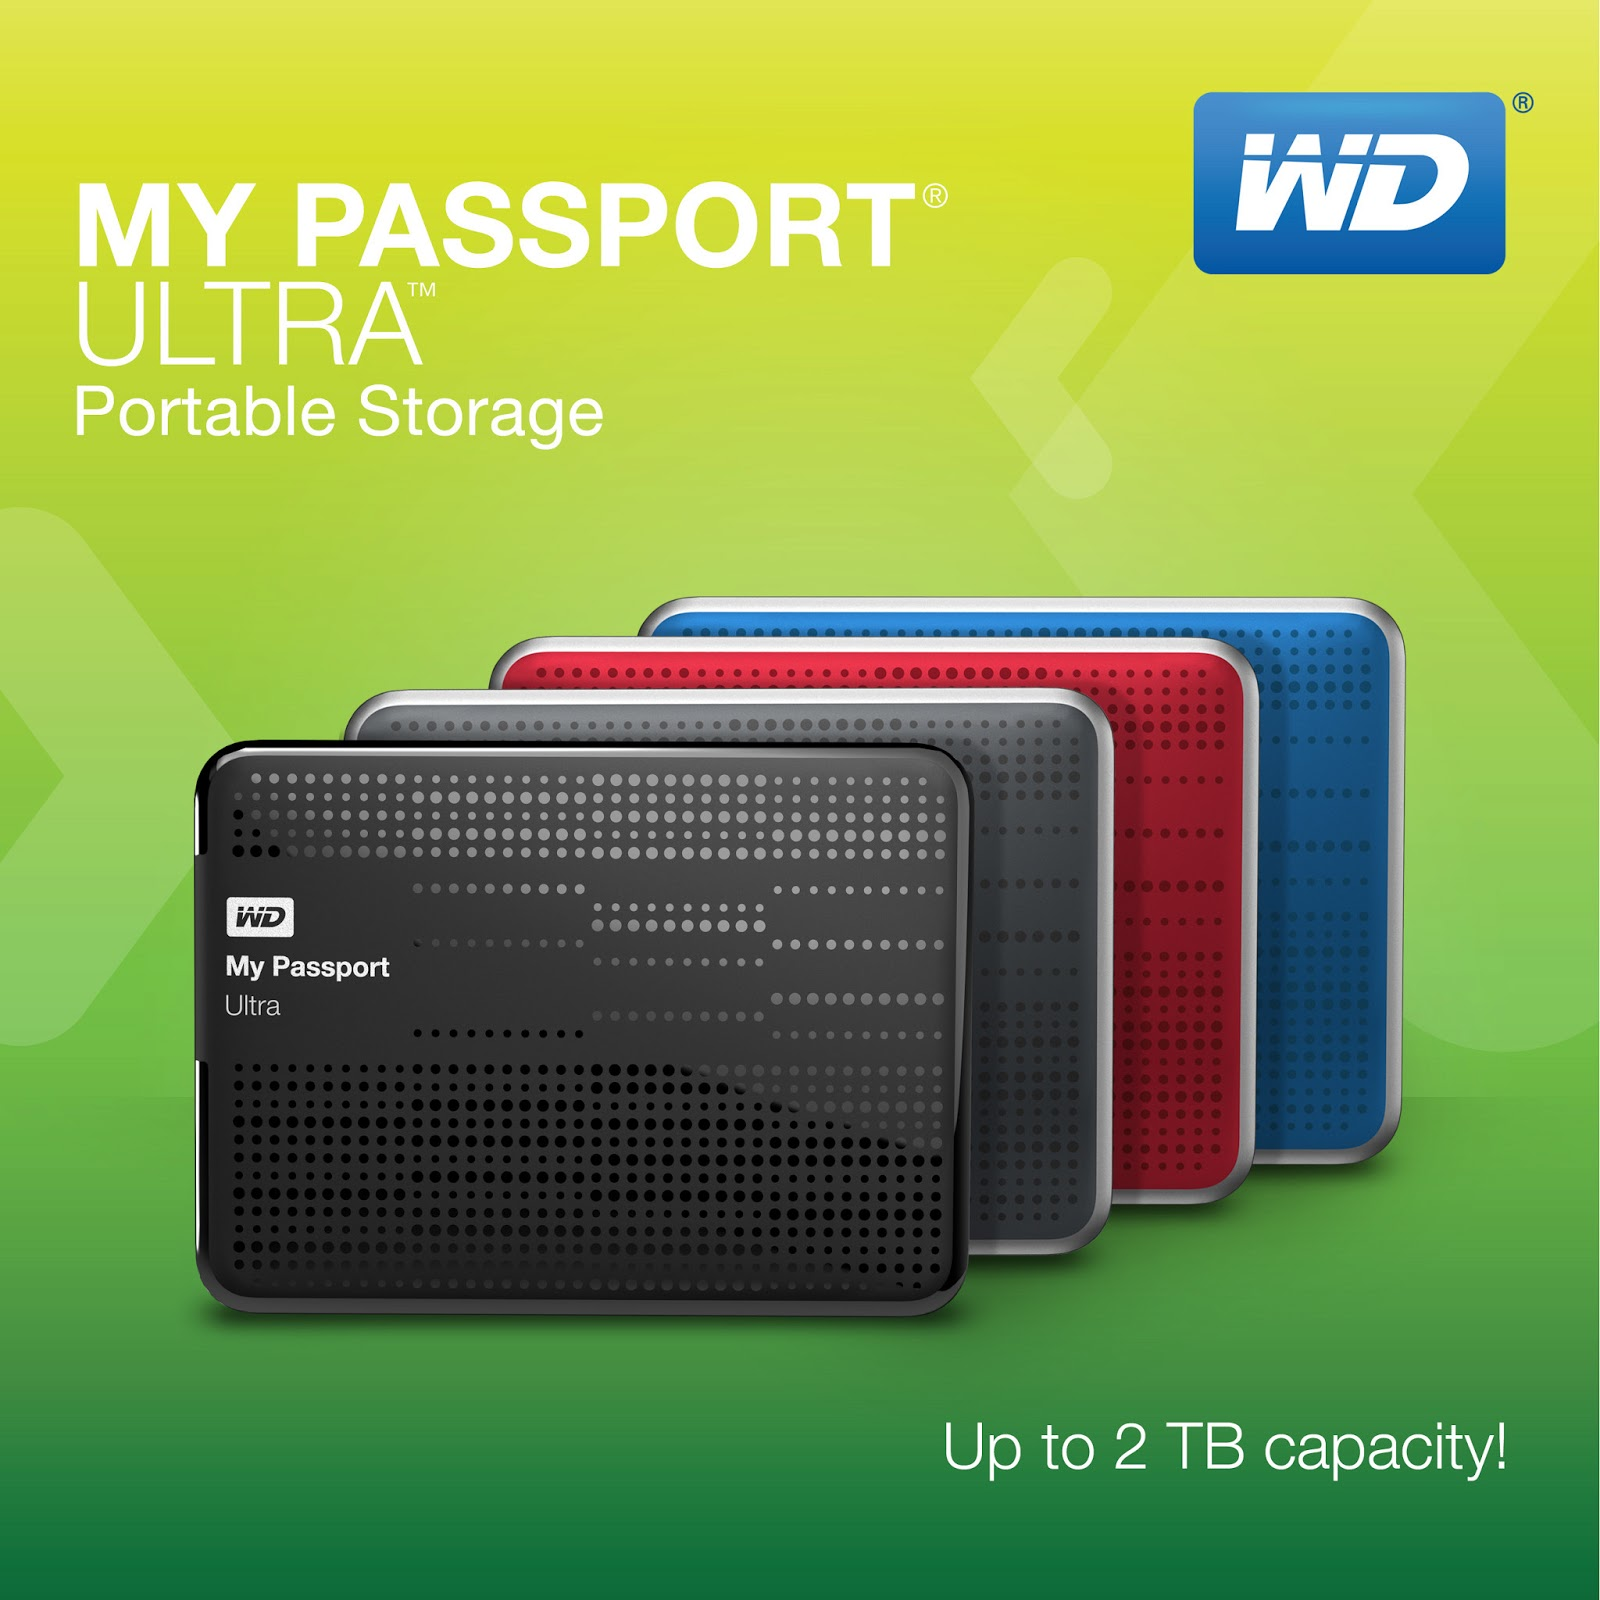 WD's My Passport Ultra Offers Consumers Ultimate Mobile